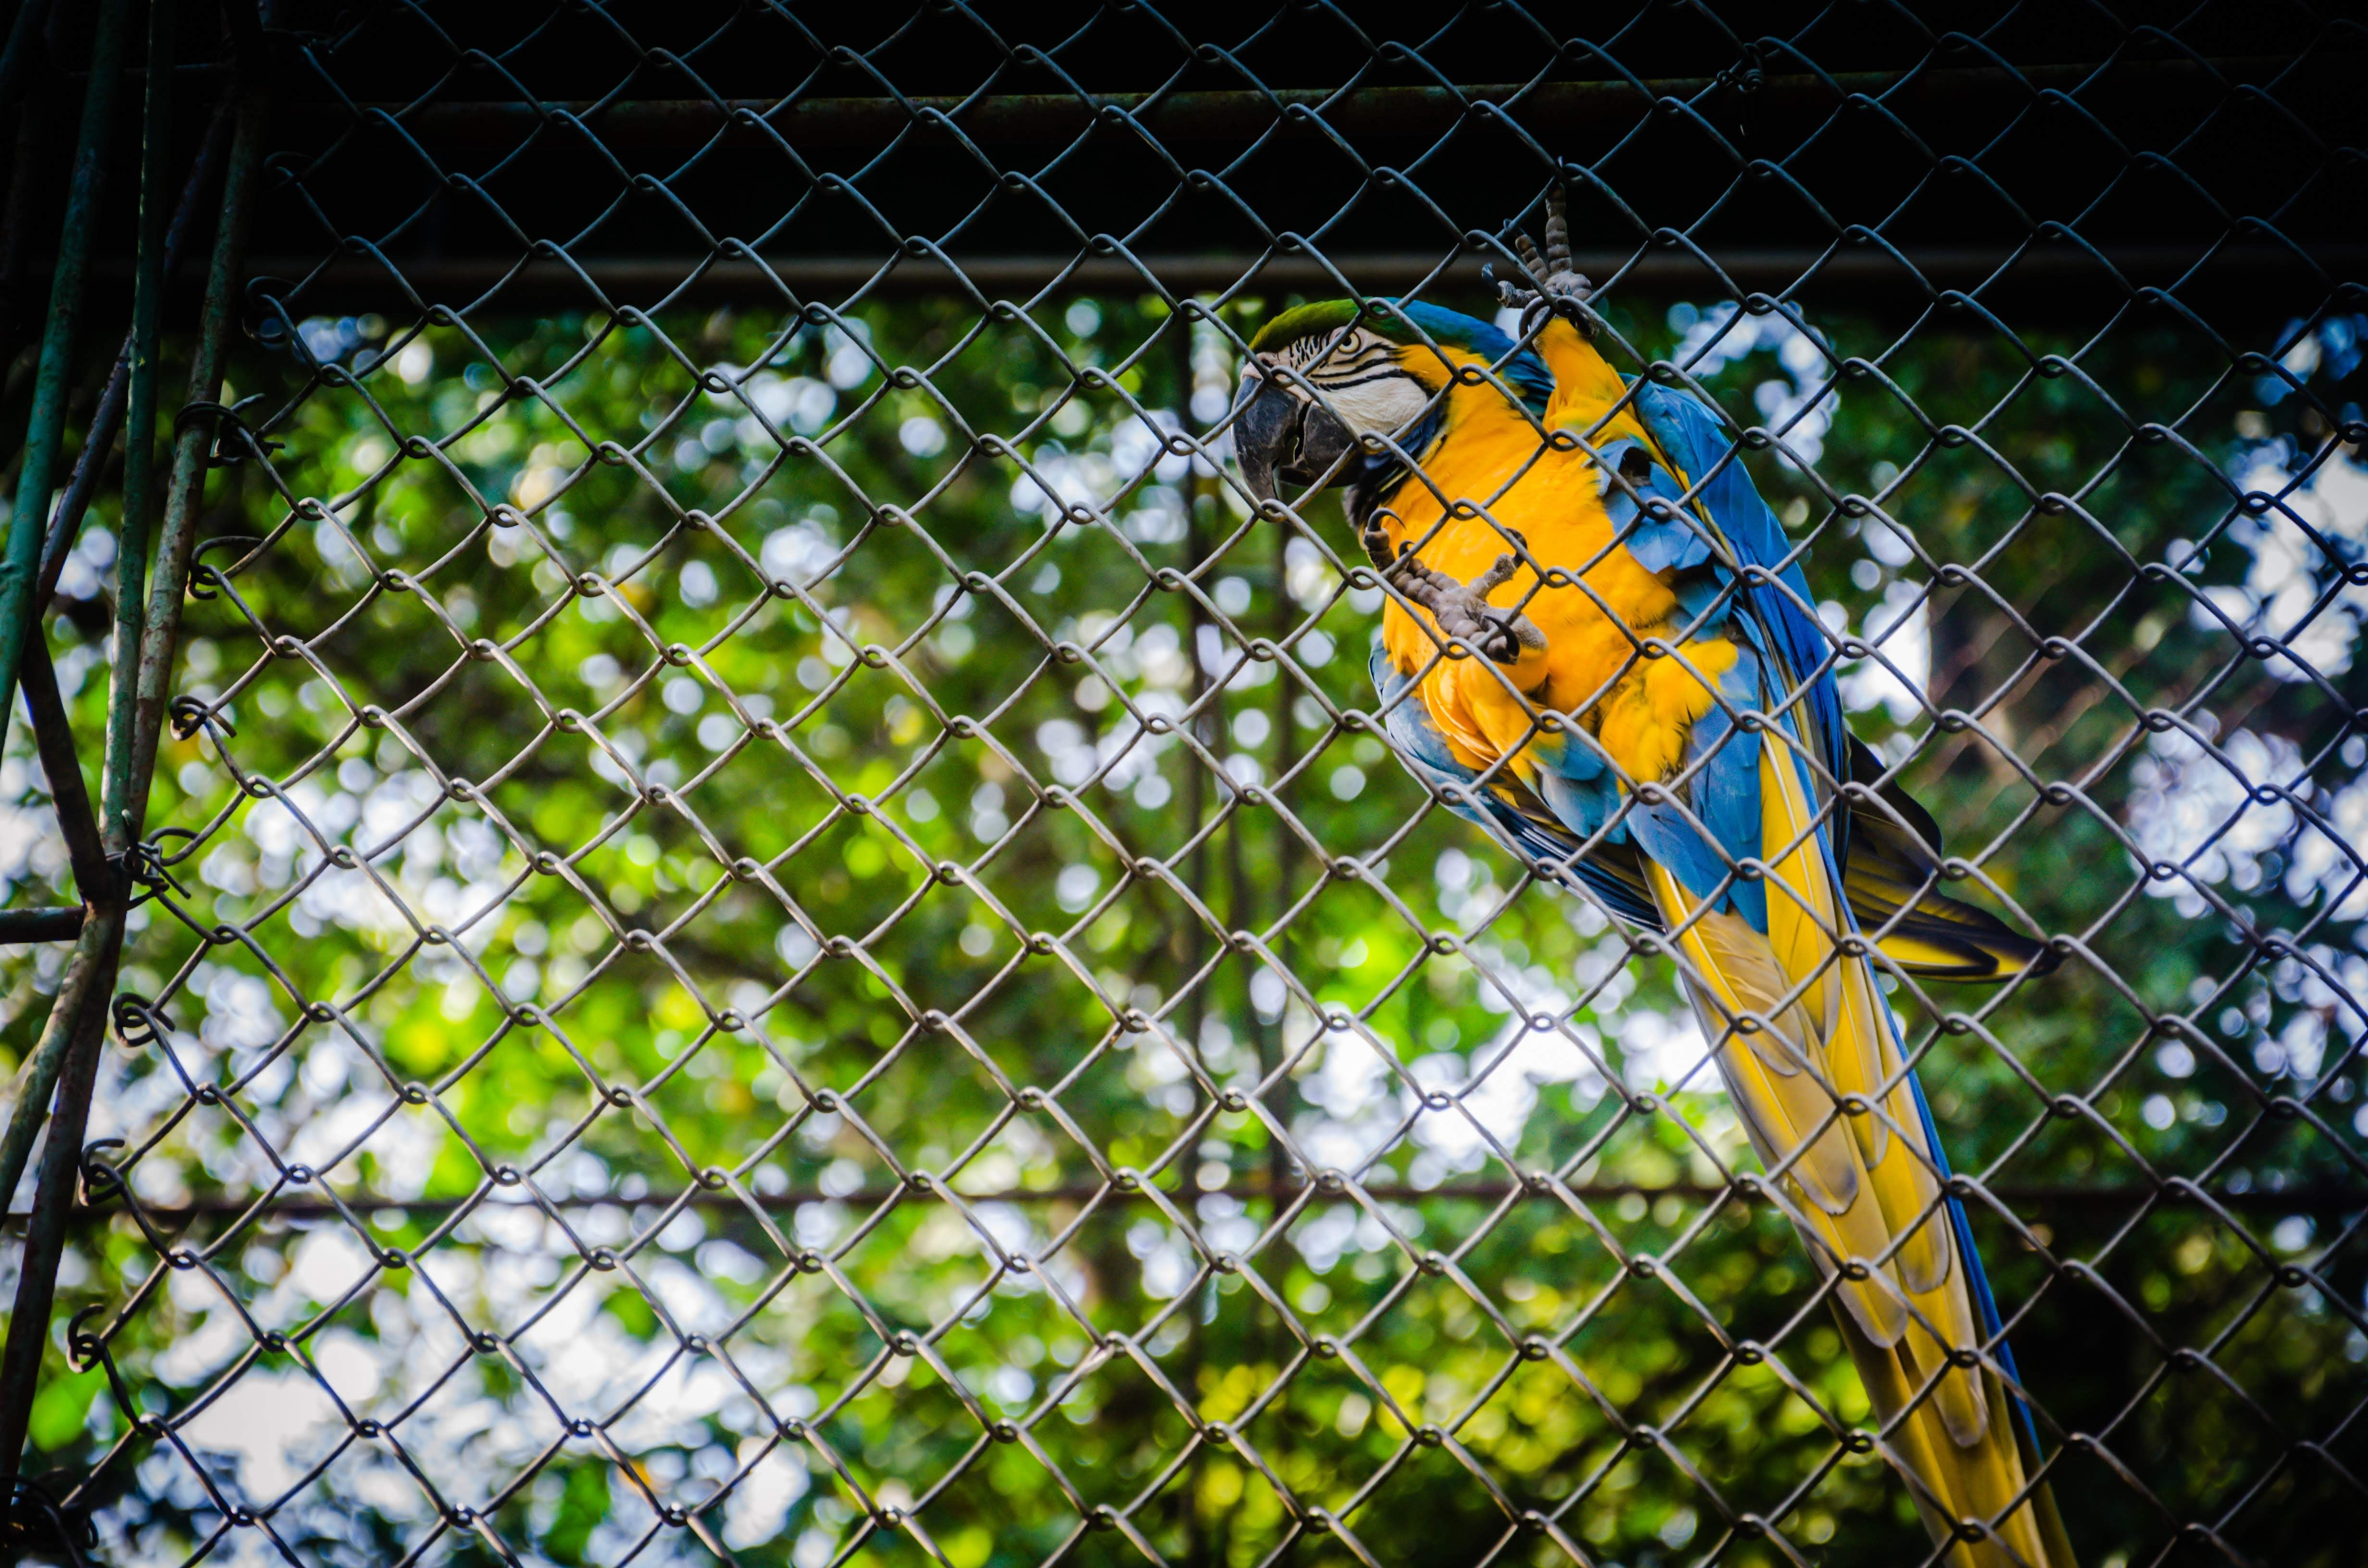 yellow, green, and blue parrot